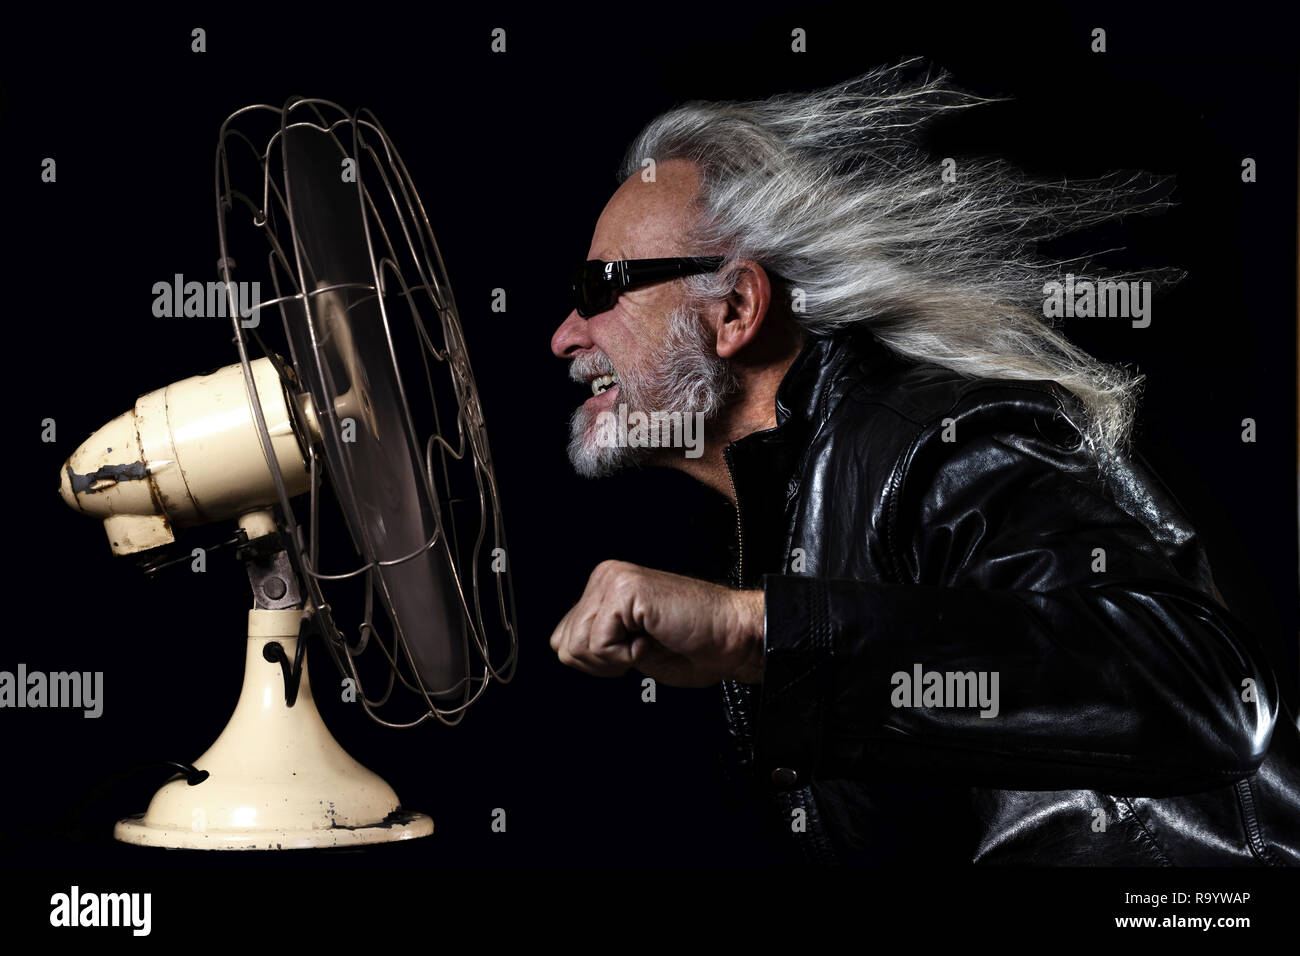 Bikers dream, long haired man simulating a motorbike ride in front of a fan - Stock Image